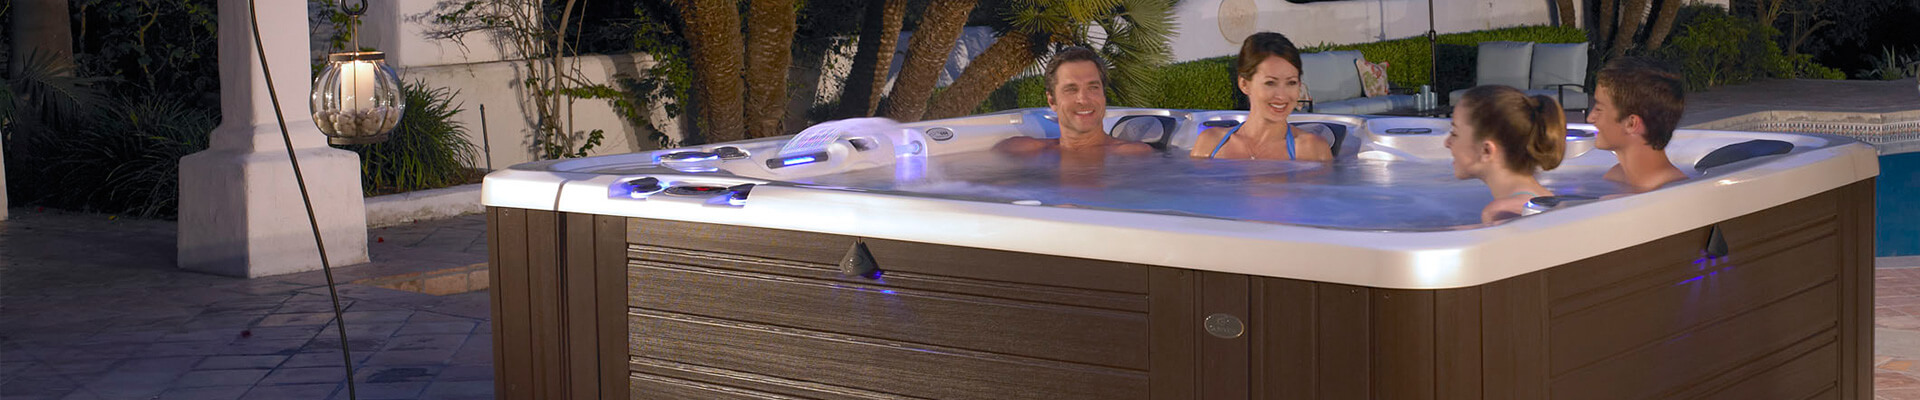 3 Smart Questions to Ask Before Buying a Backyard Spa, Hot Tubs Near Mitchell